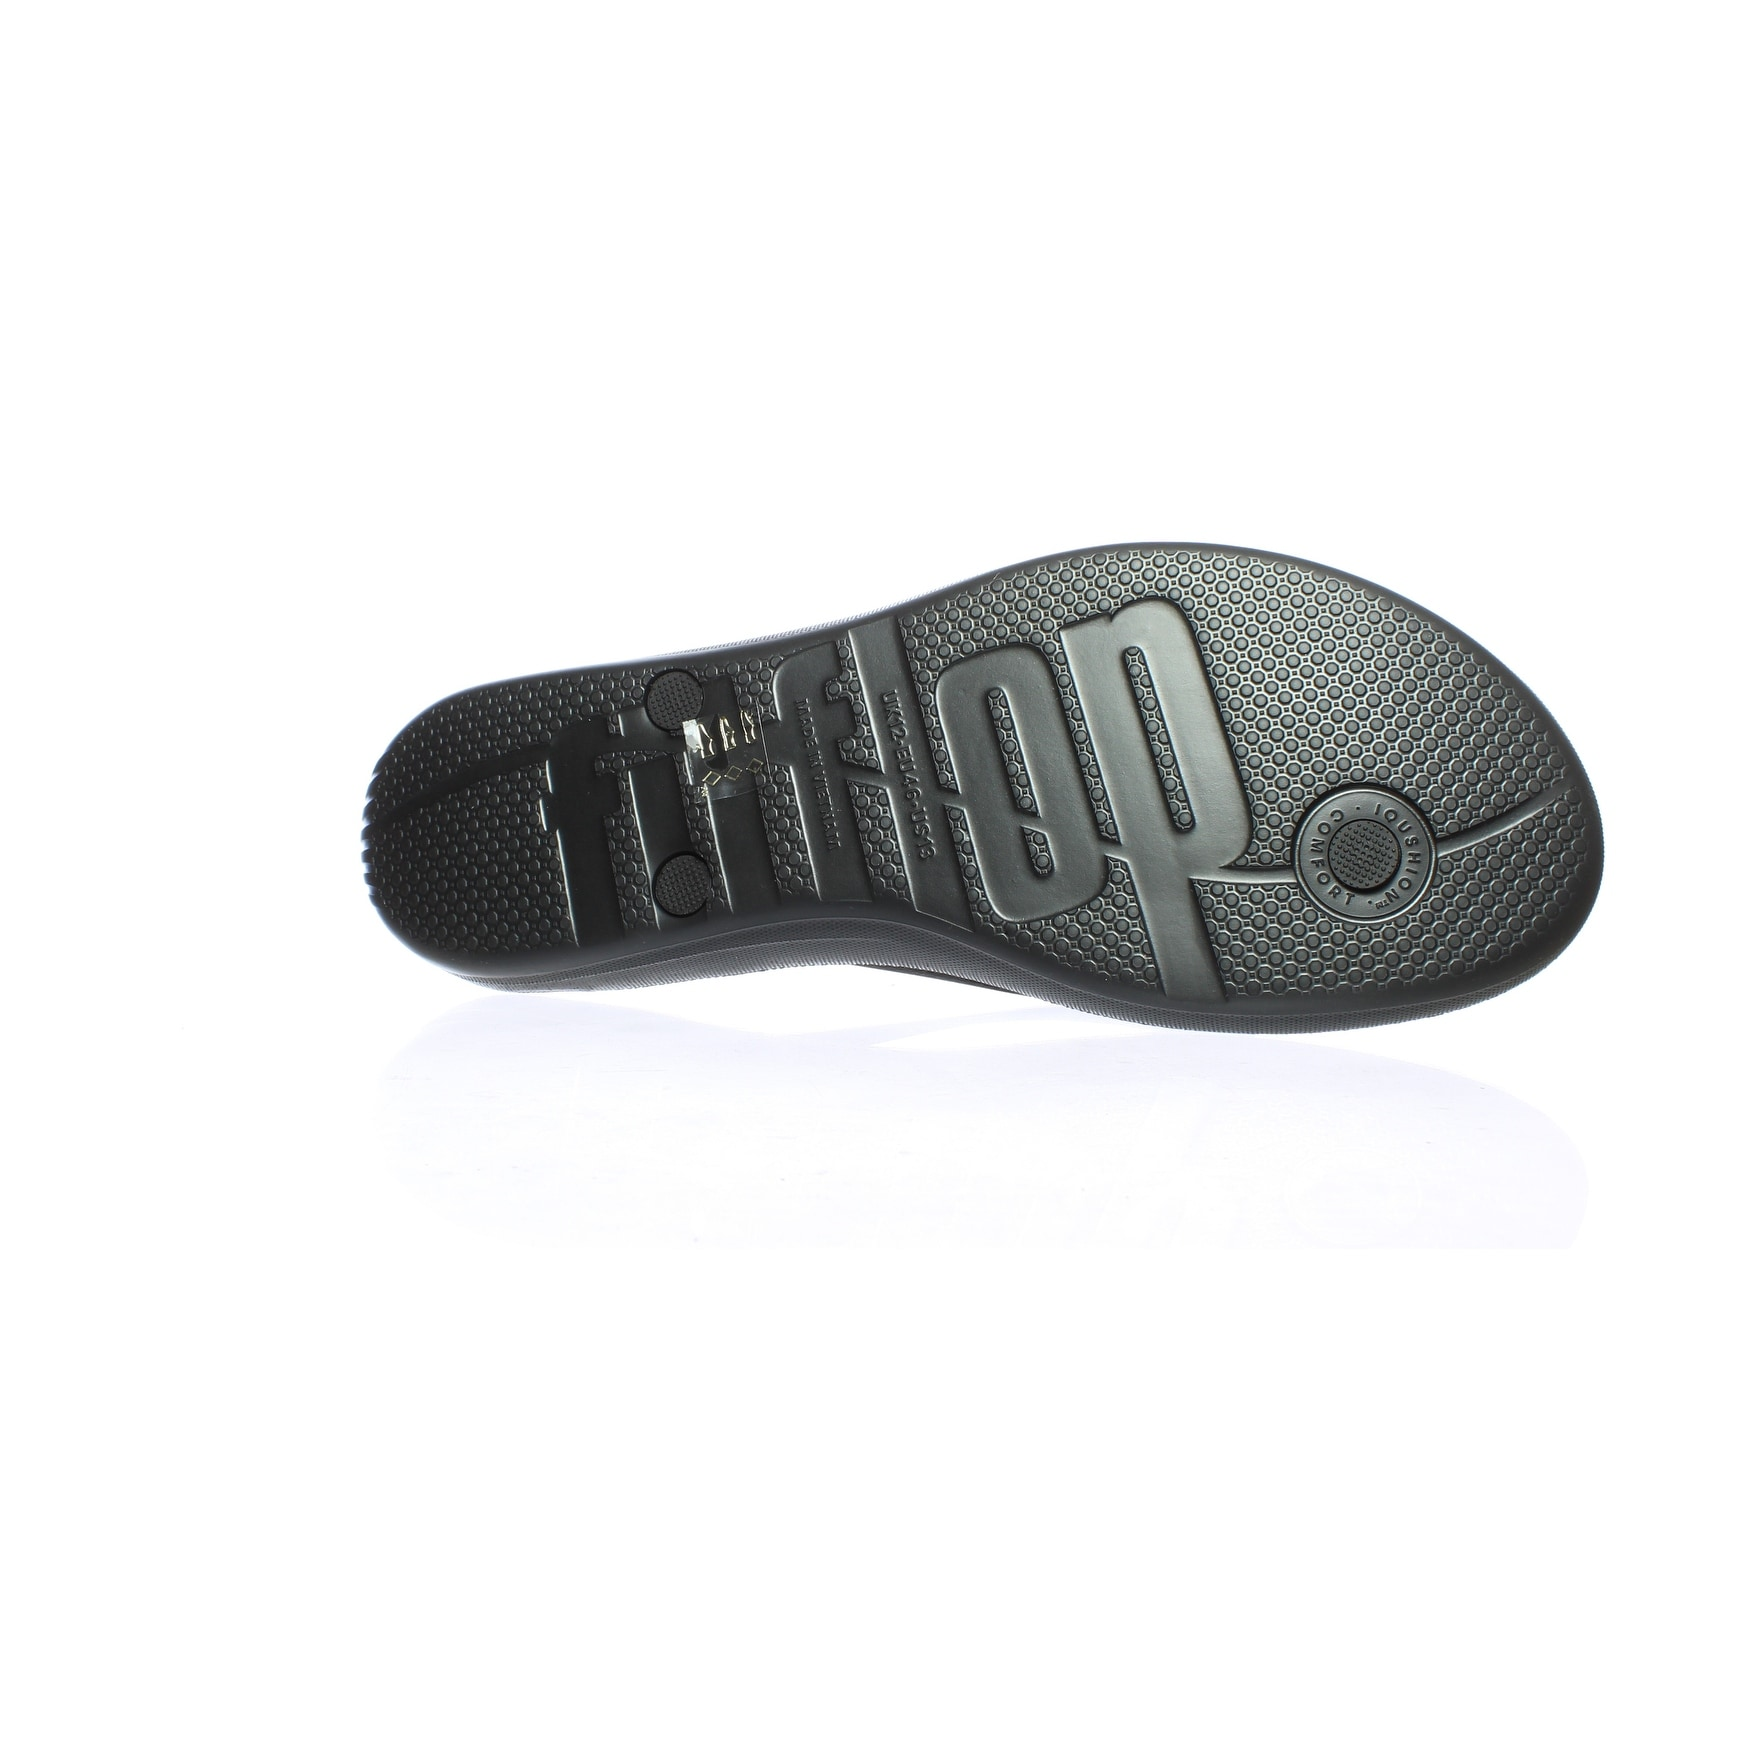 abd901f10 Shop FitFlop Mens Iqushion Black Flip Flops Size 13 - Free Shipping On  Orders Over  45 - Overstock - 27993454